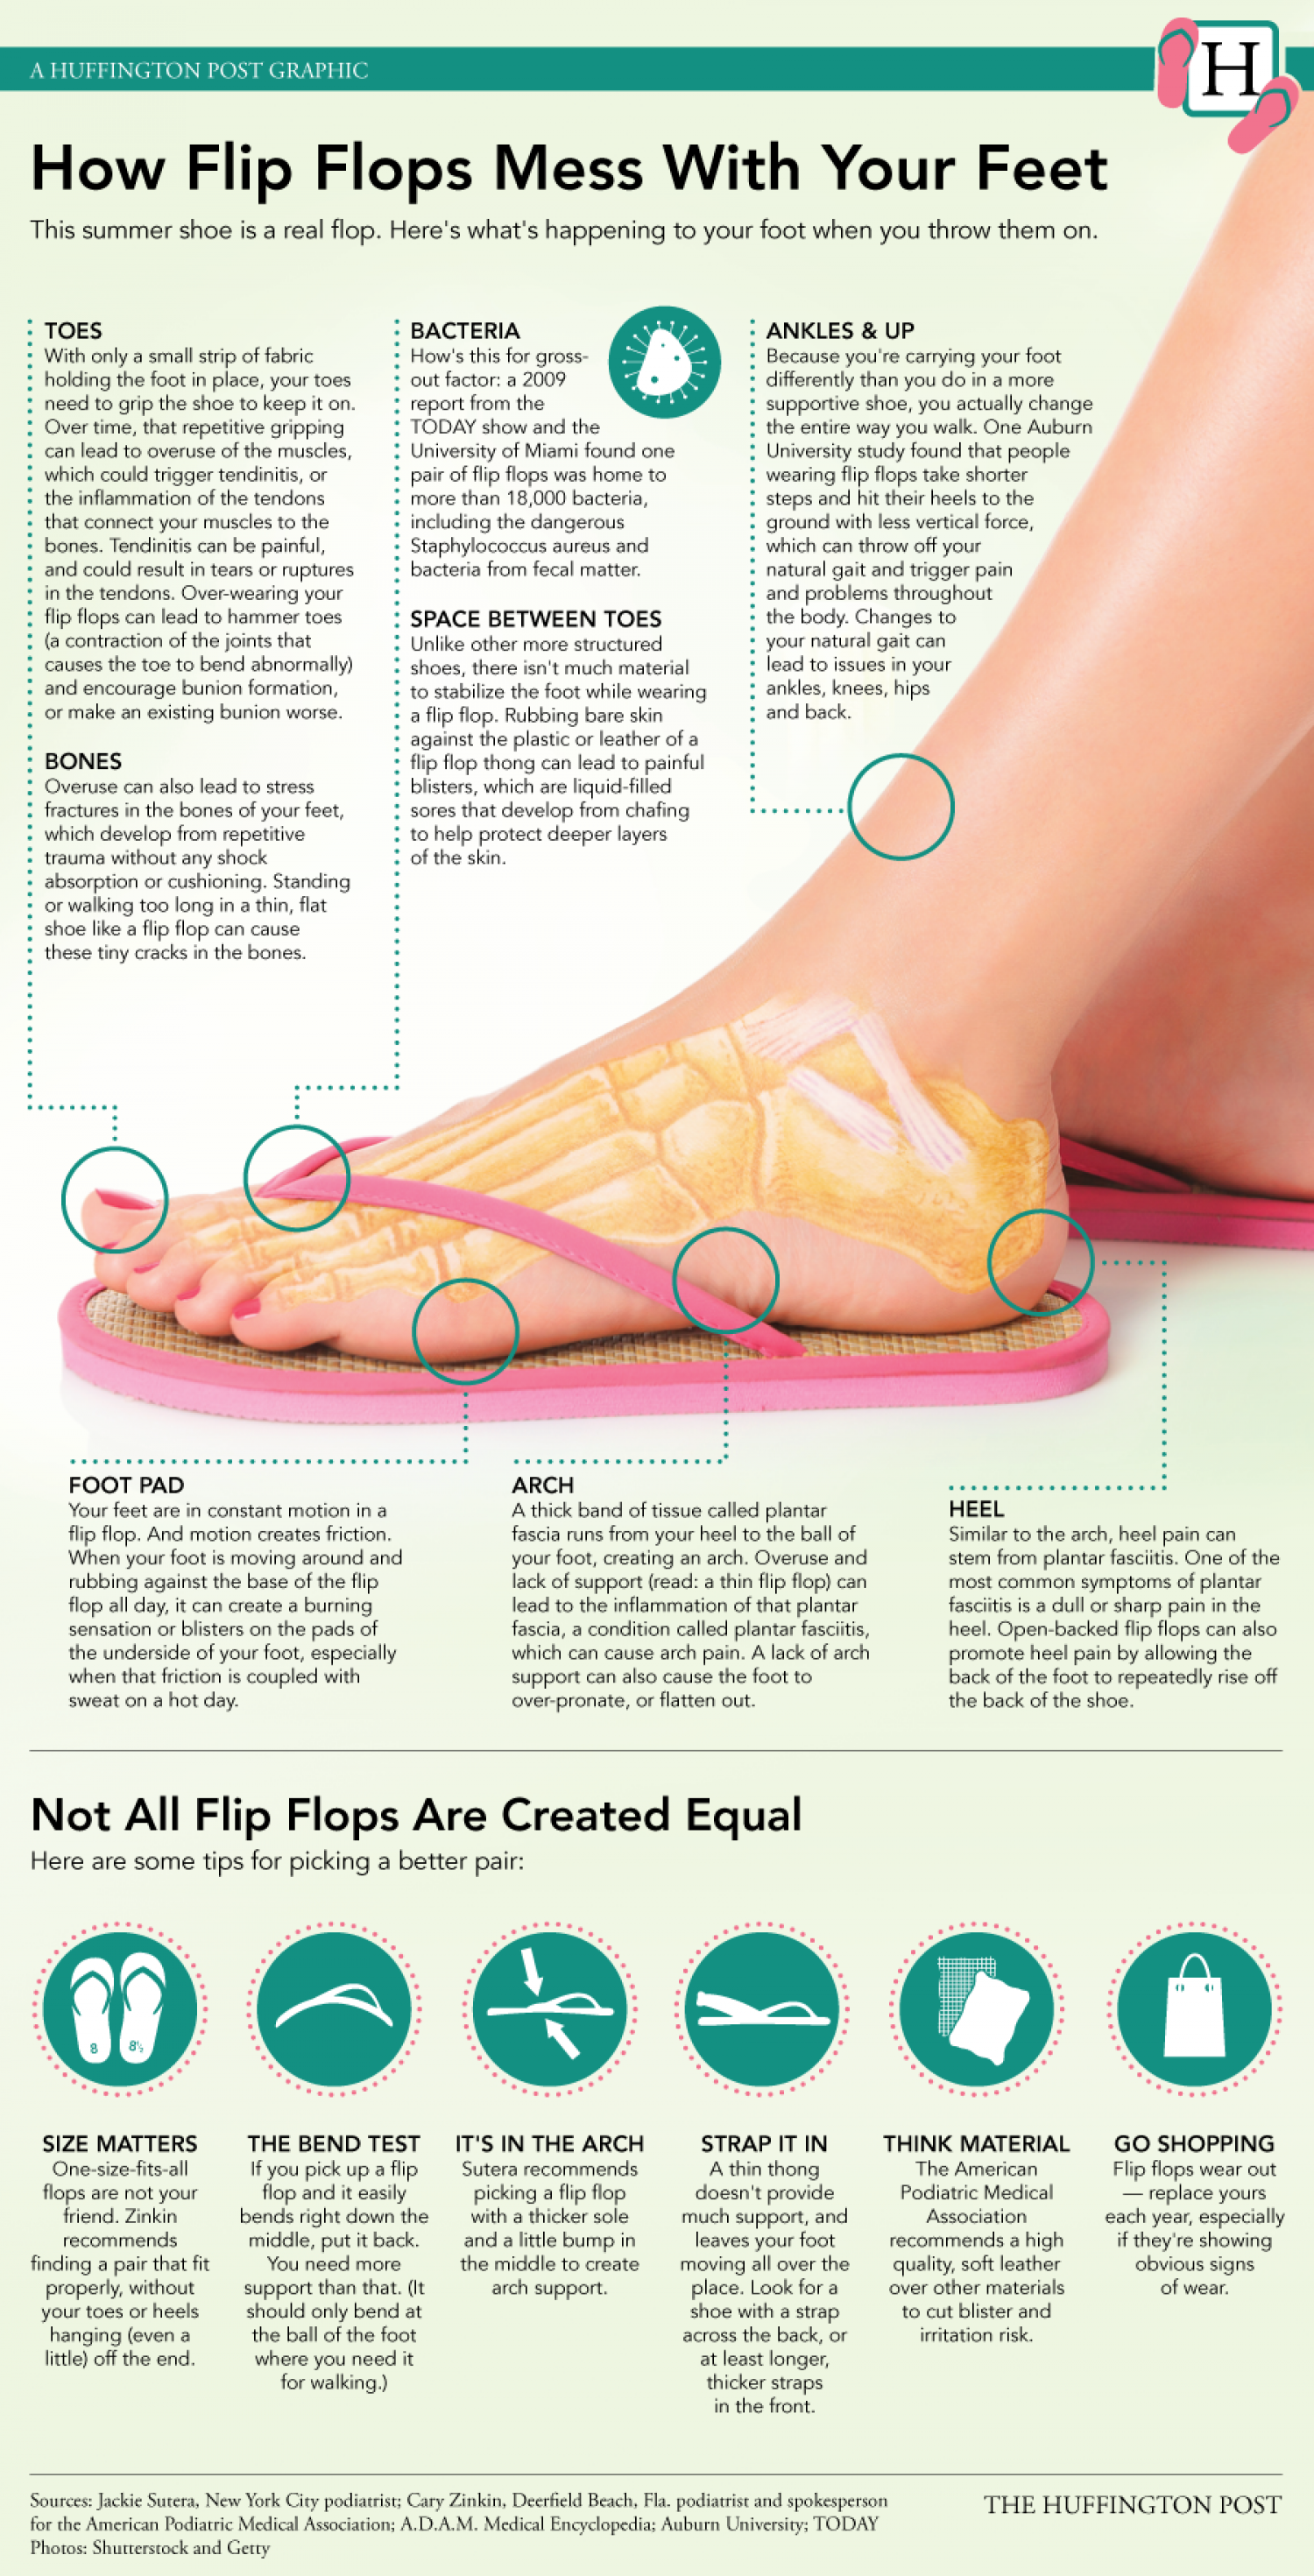 How Flip Flops Mess With Your Feet Infographic